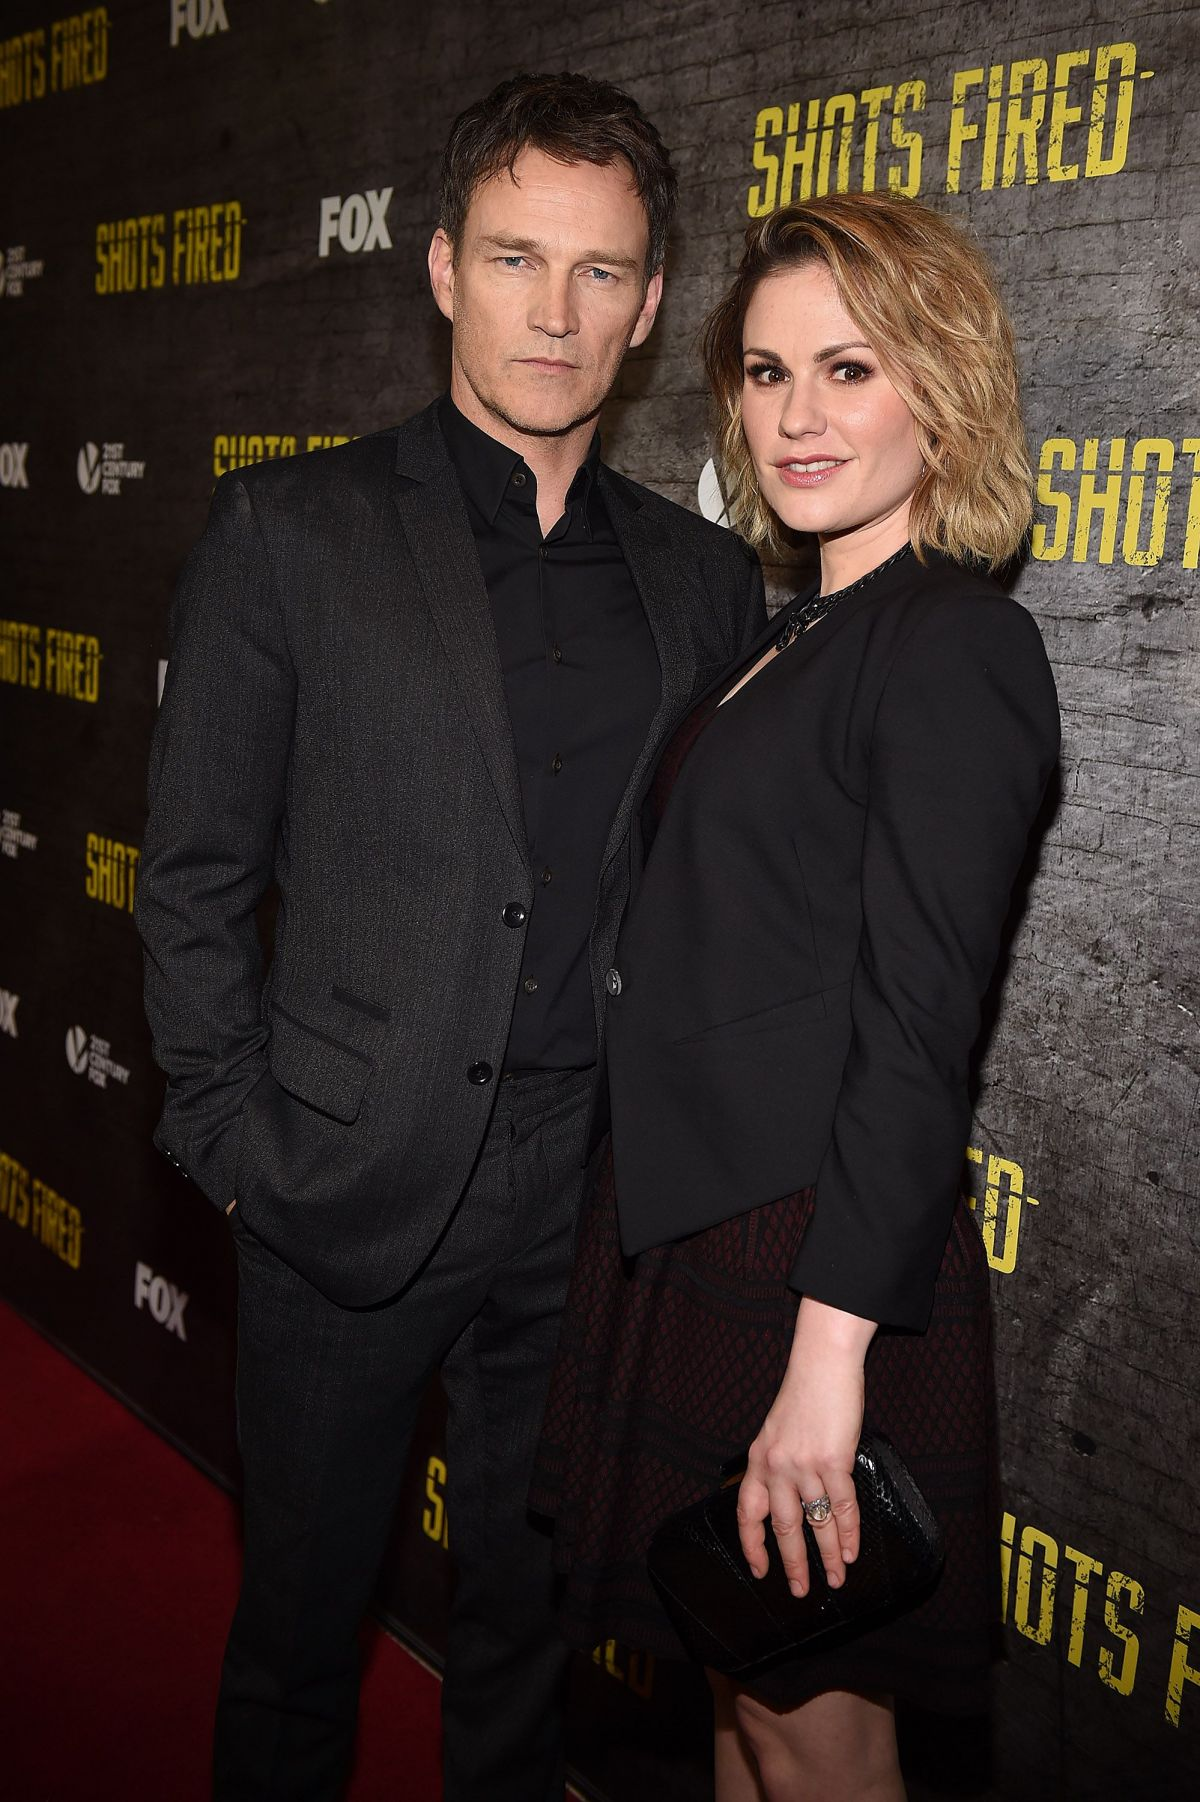 ANNA PAQUIN at Shots Fired TV Series Premiere in Los Angeles  03/16/2017